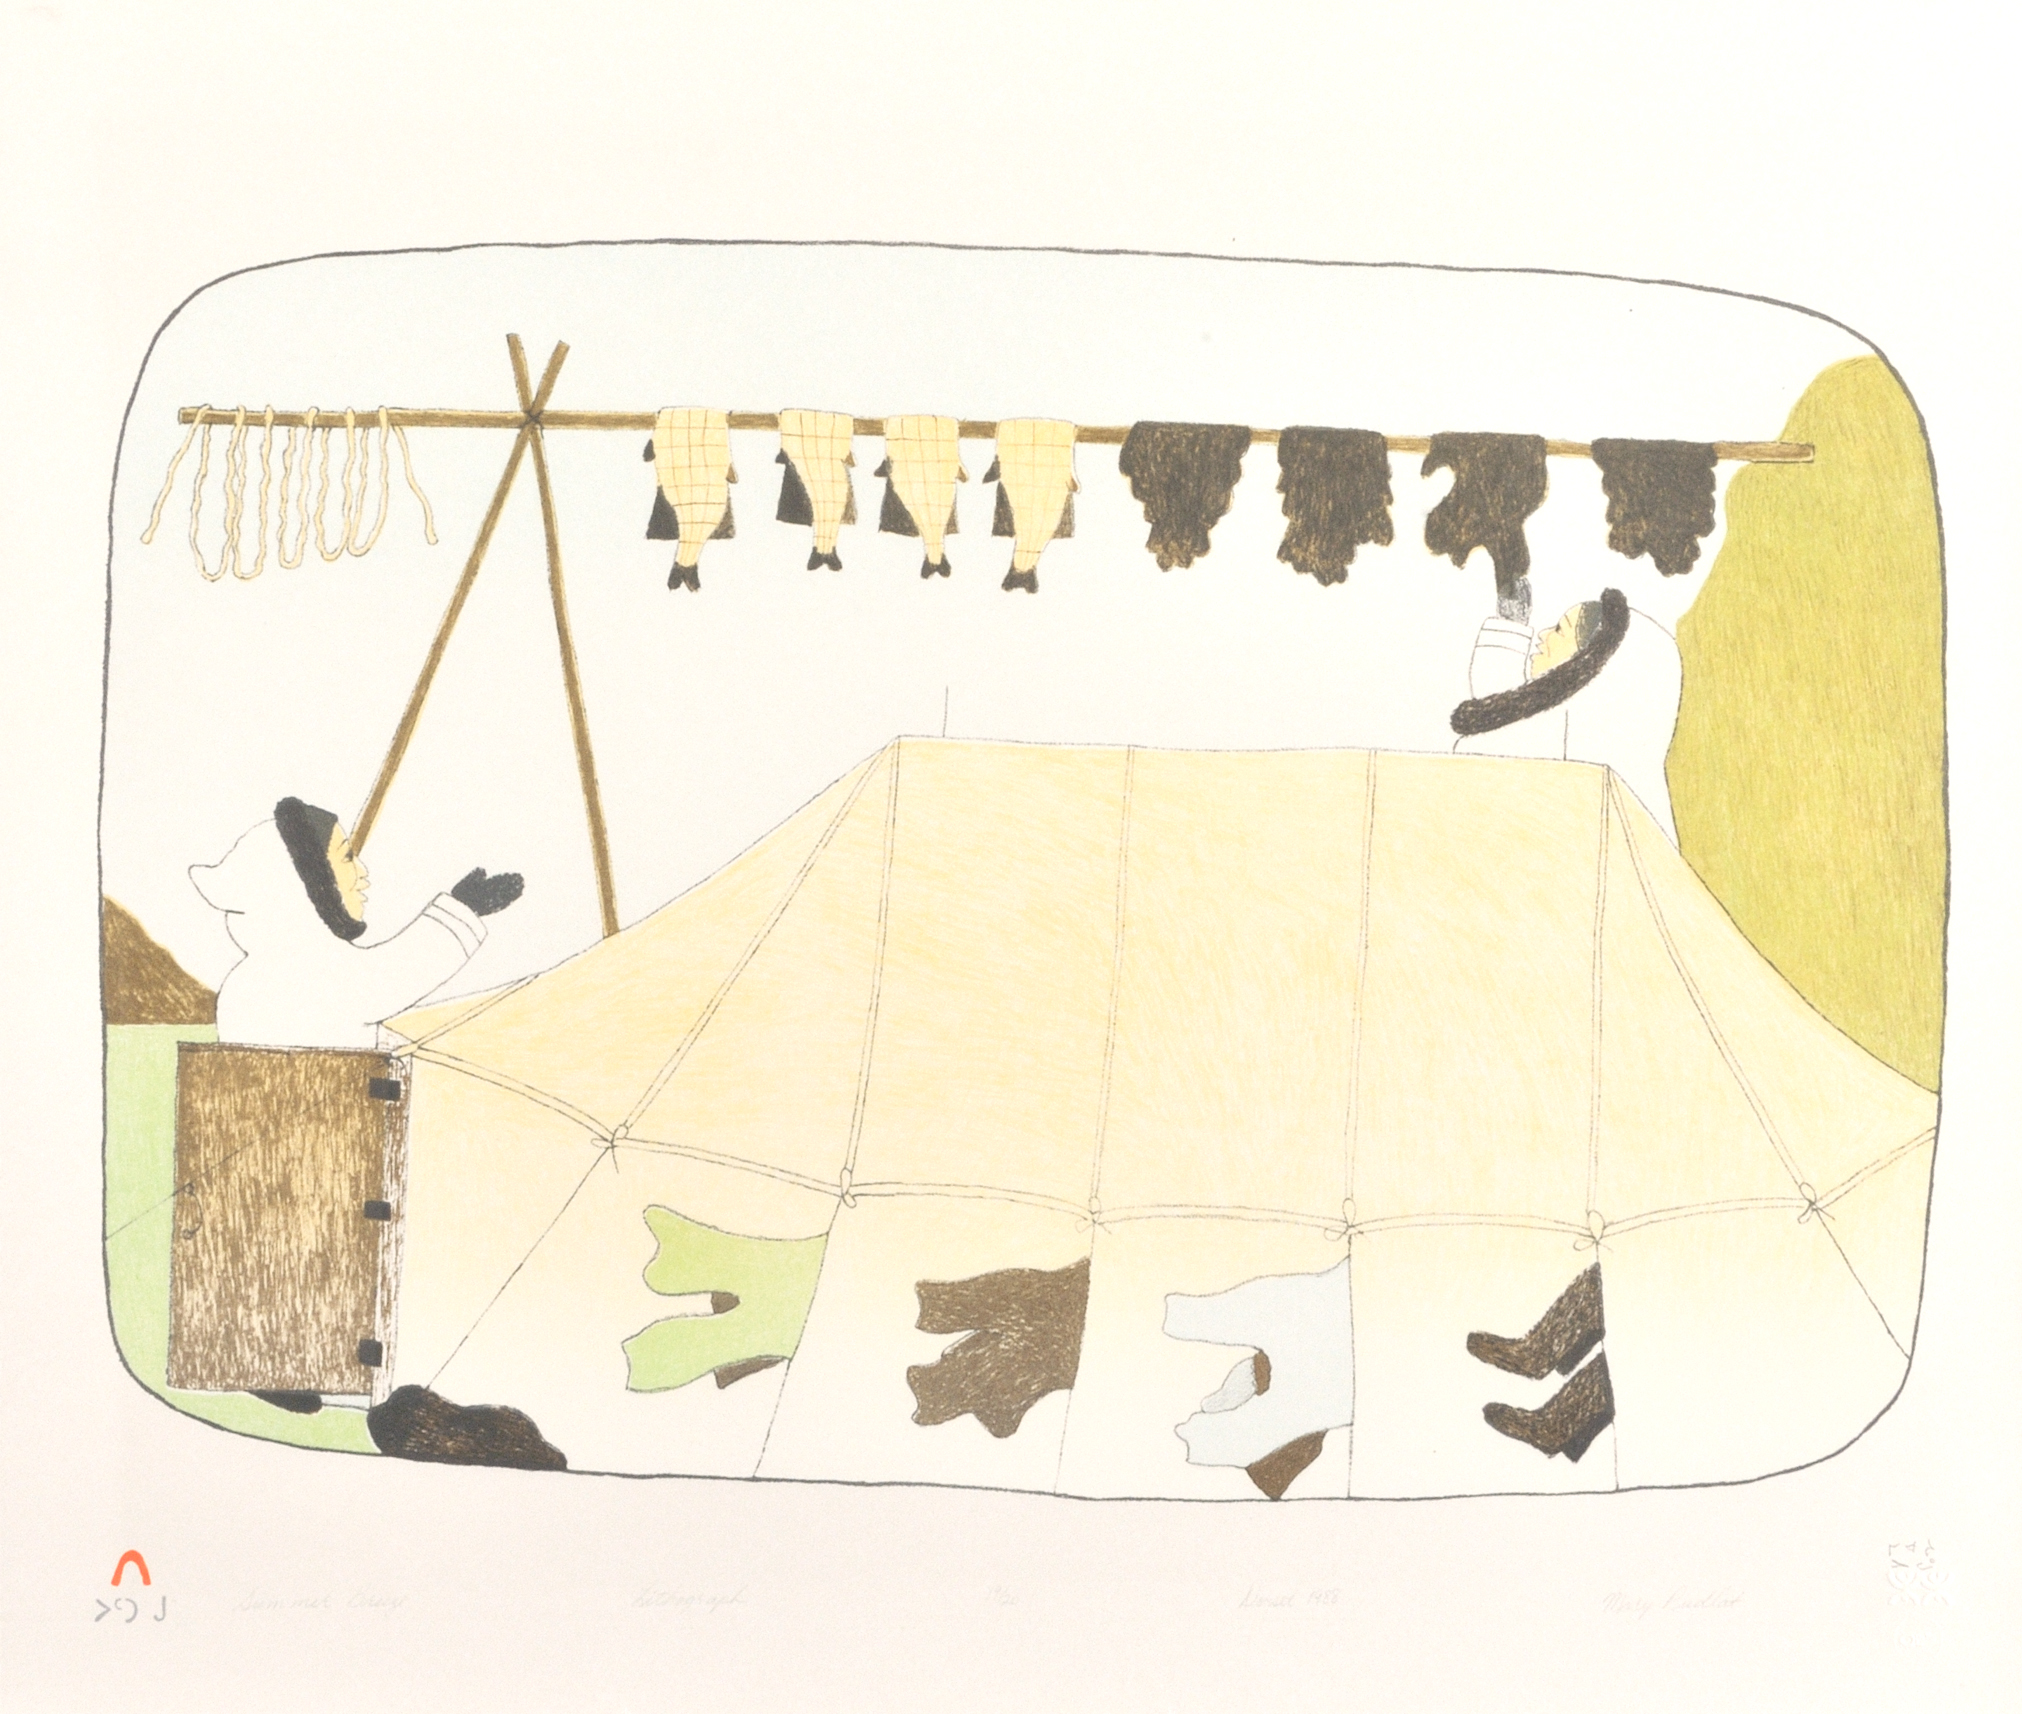 Mary Pudlat  SUMMER BREEZE Lithograph 1988 50.5 x 60 cm $350.00 CDN Released in the 1988 collection Dorset ID#: 88-26